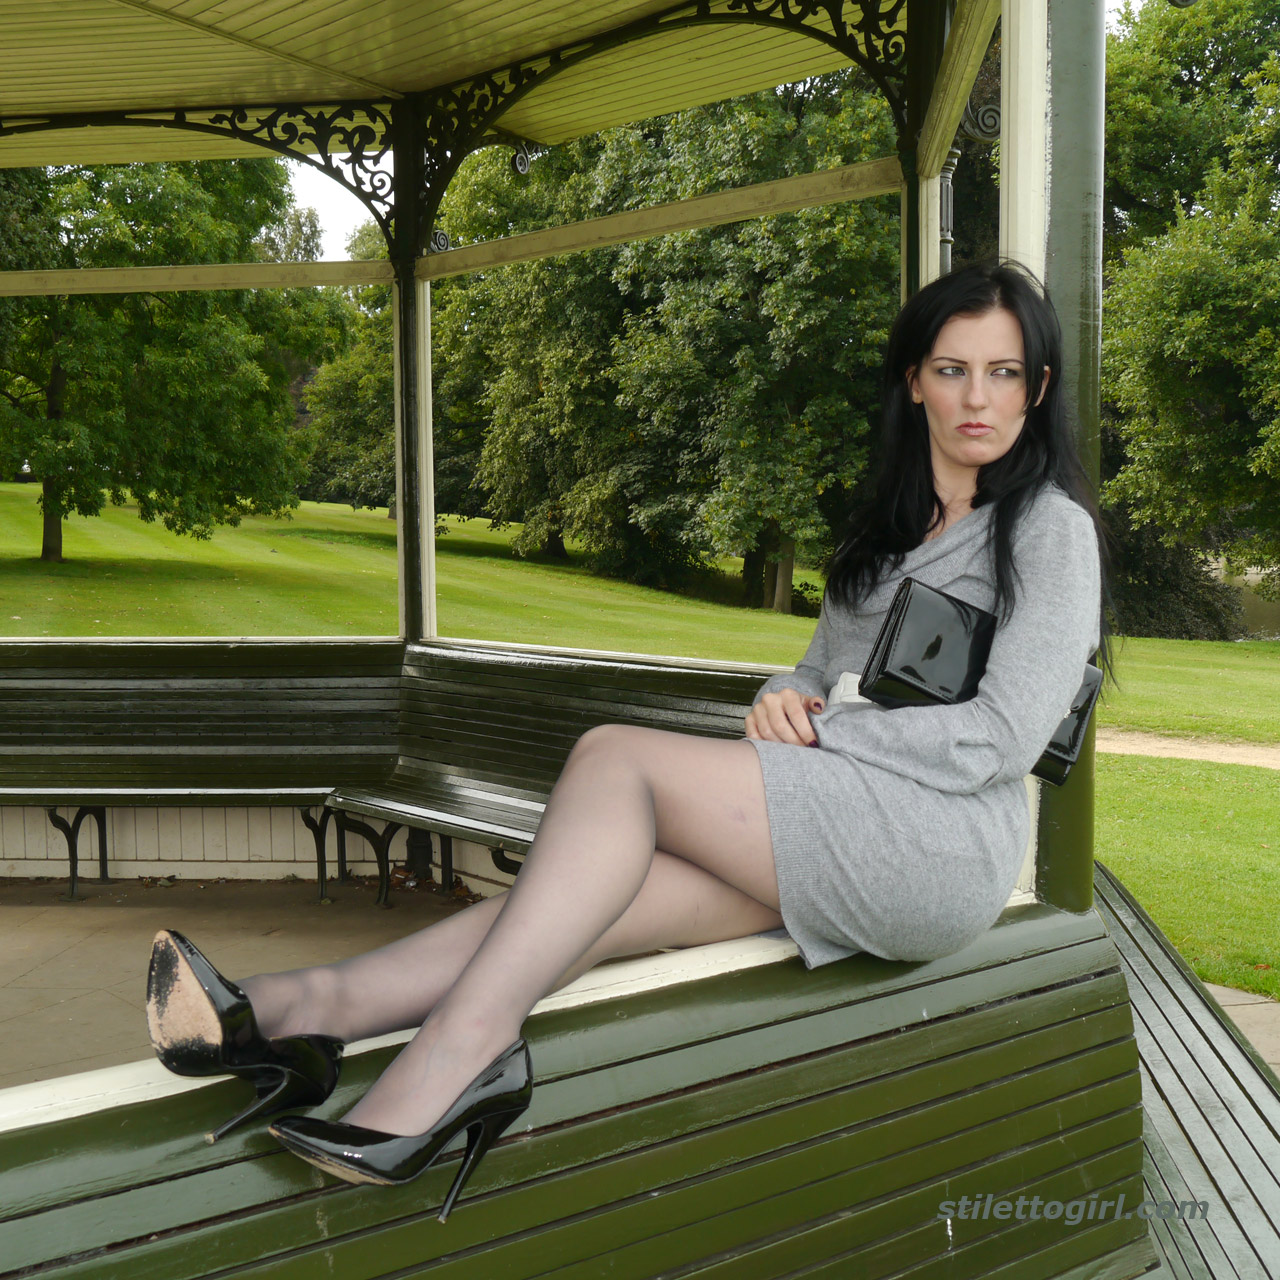 [StilettoGirl] Tricia set 1013 the heeled look